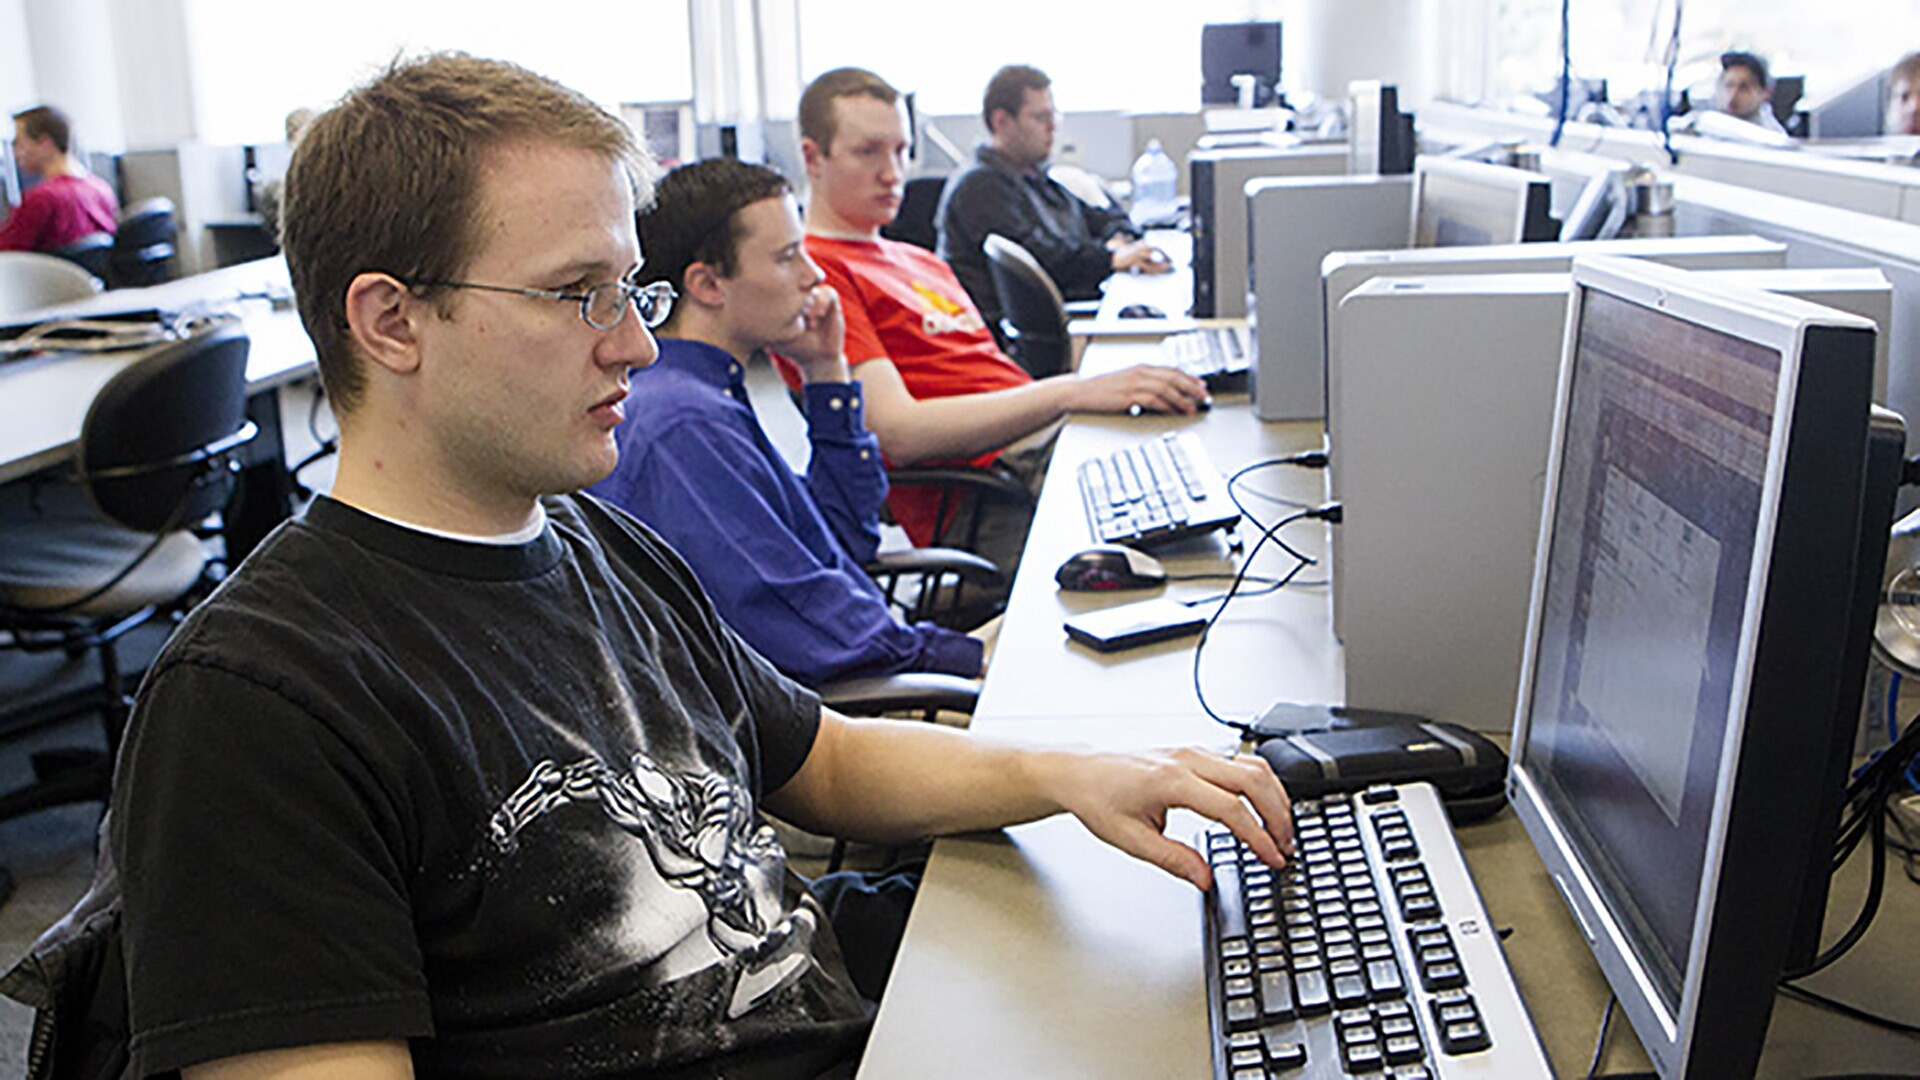 Several IT students working in a computer lab